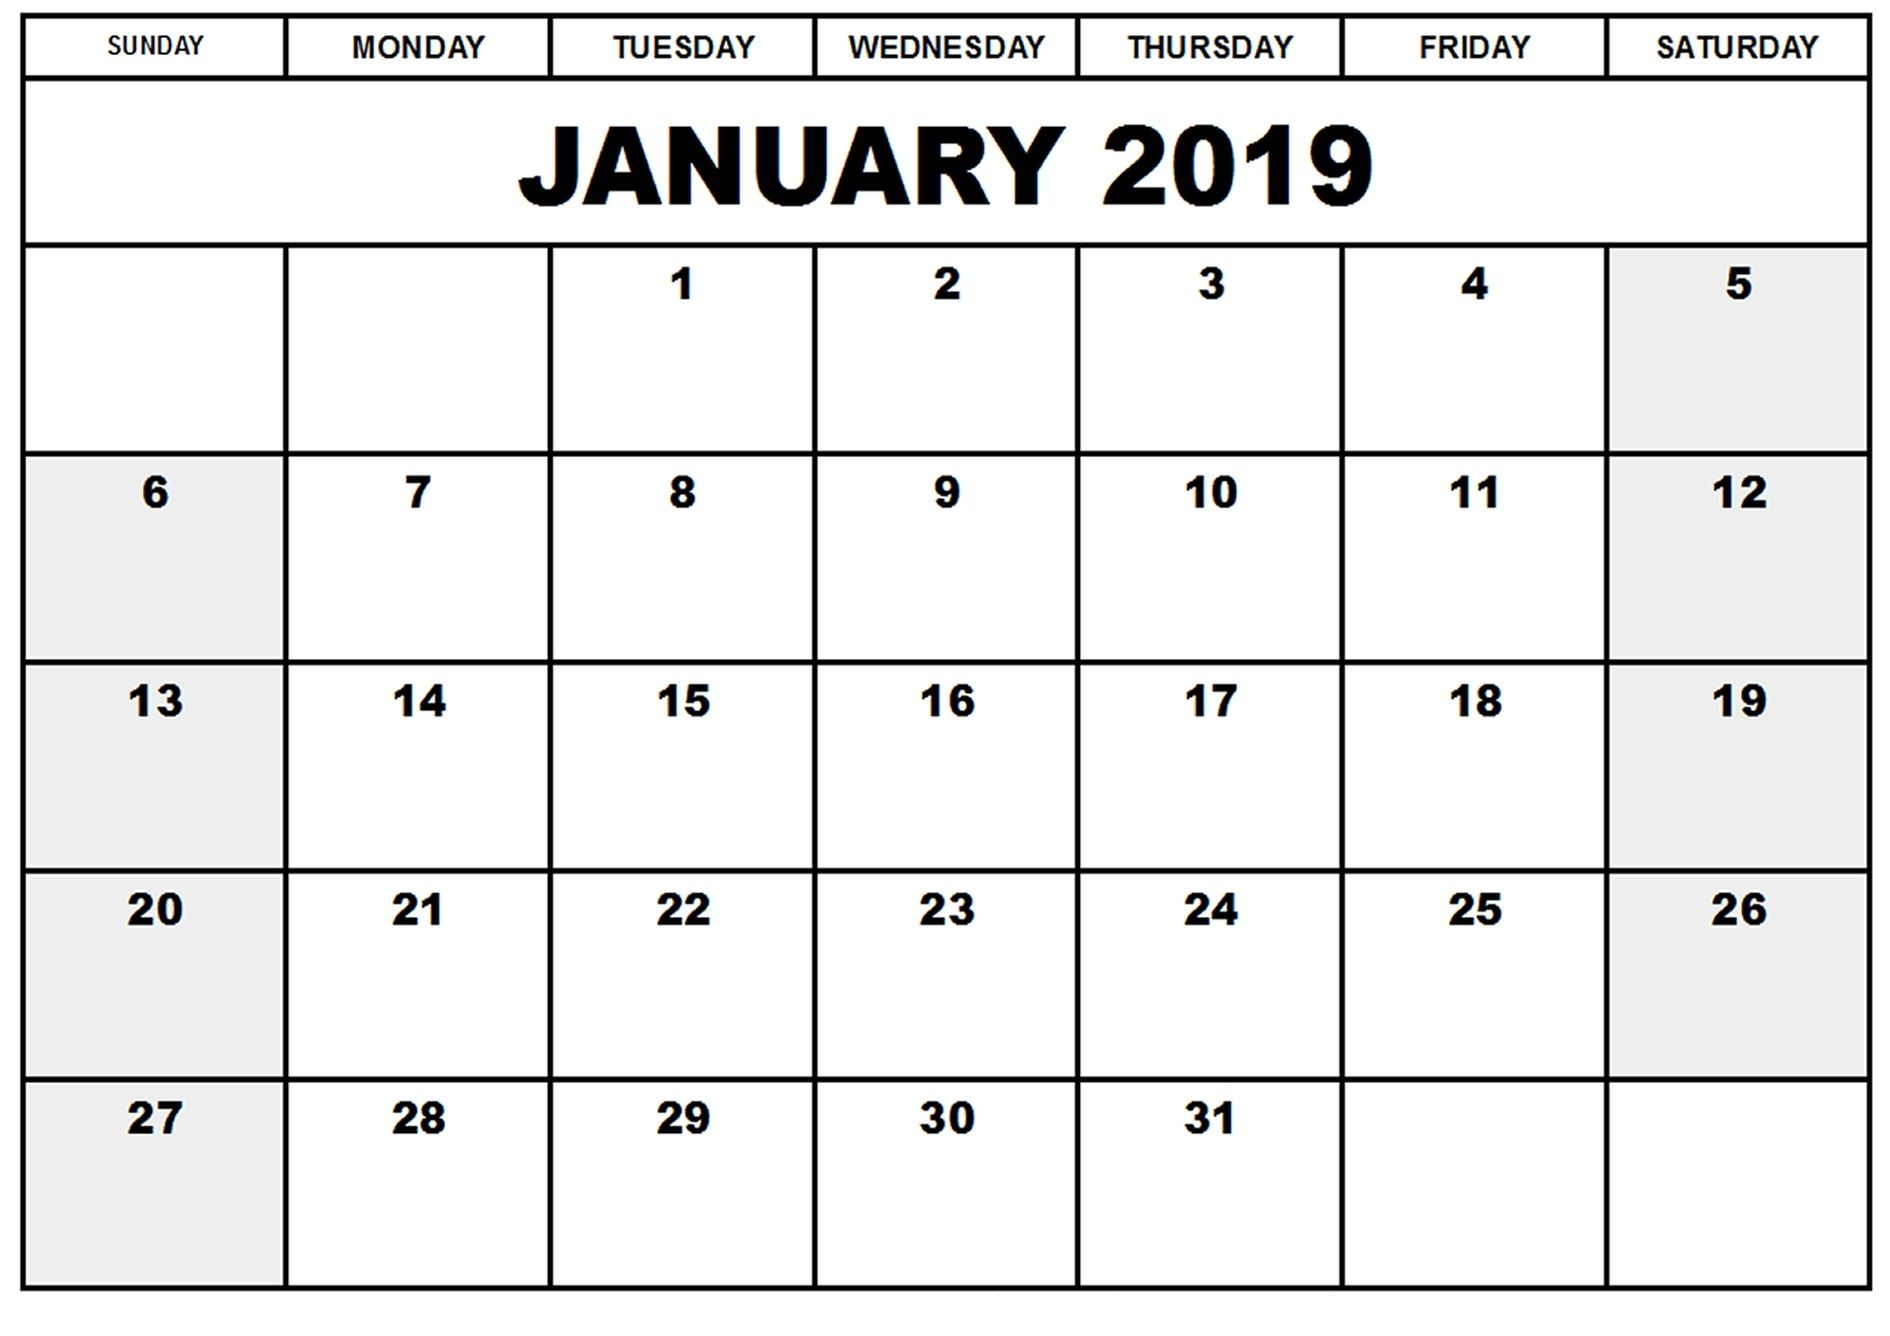 January 2019 Calendar Word Template January 2019 Calendar Word #Printable #Calendar #Calendar2019